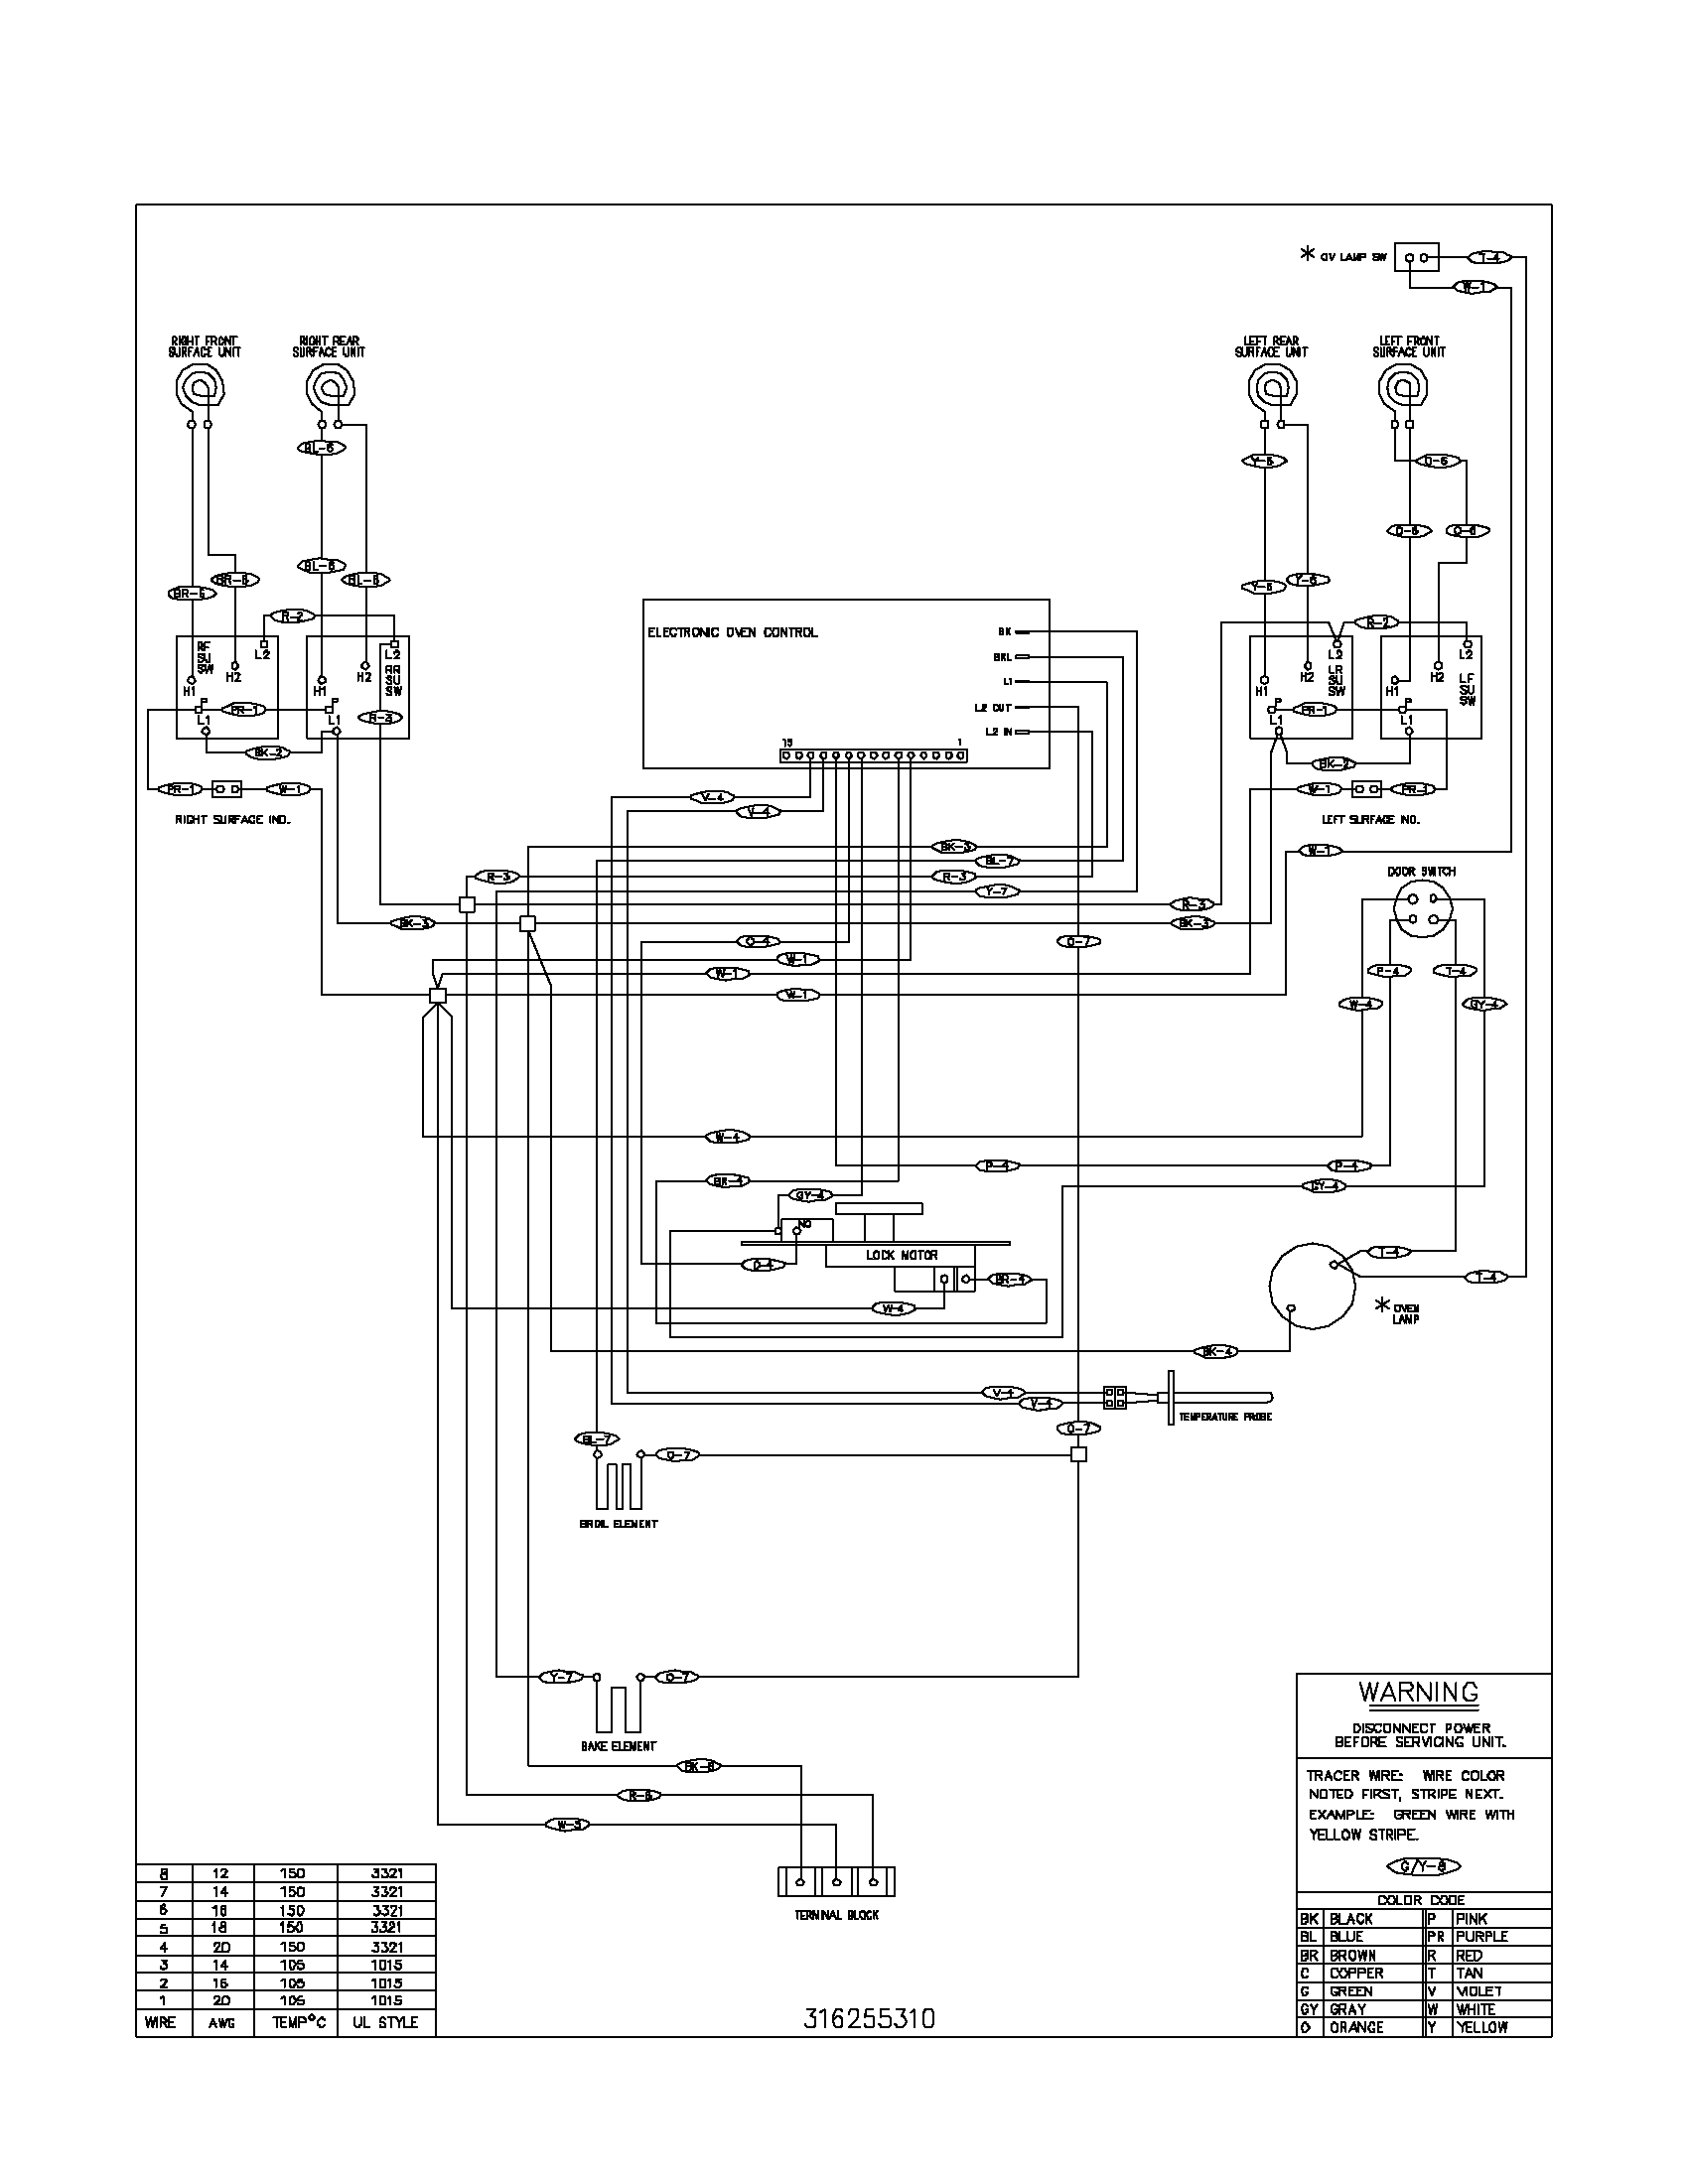 Schematic For Samsung Dryer also Belt Drive Washer Help additionally Ge Washer Schematic Diagram in addition Thermador Cooktop Wiring besides Electrical Schematic Kitchenaid Mixer. on wiring diagram for kenmore refrigerator